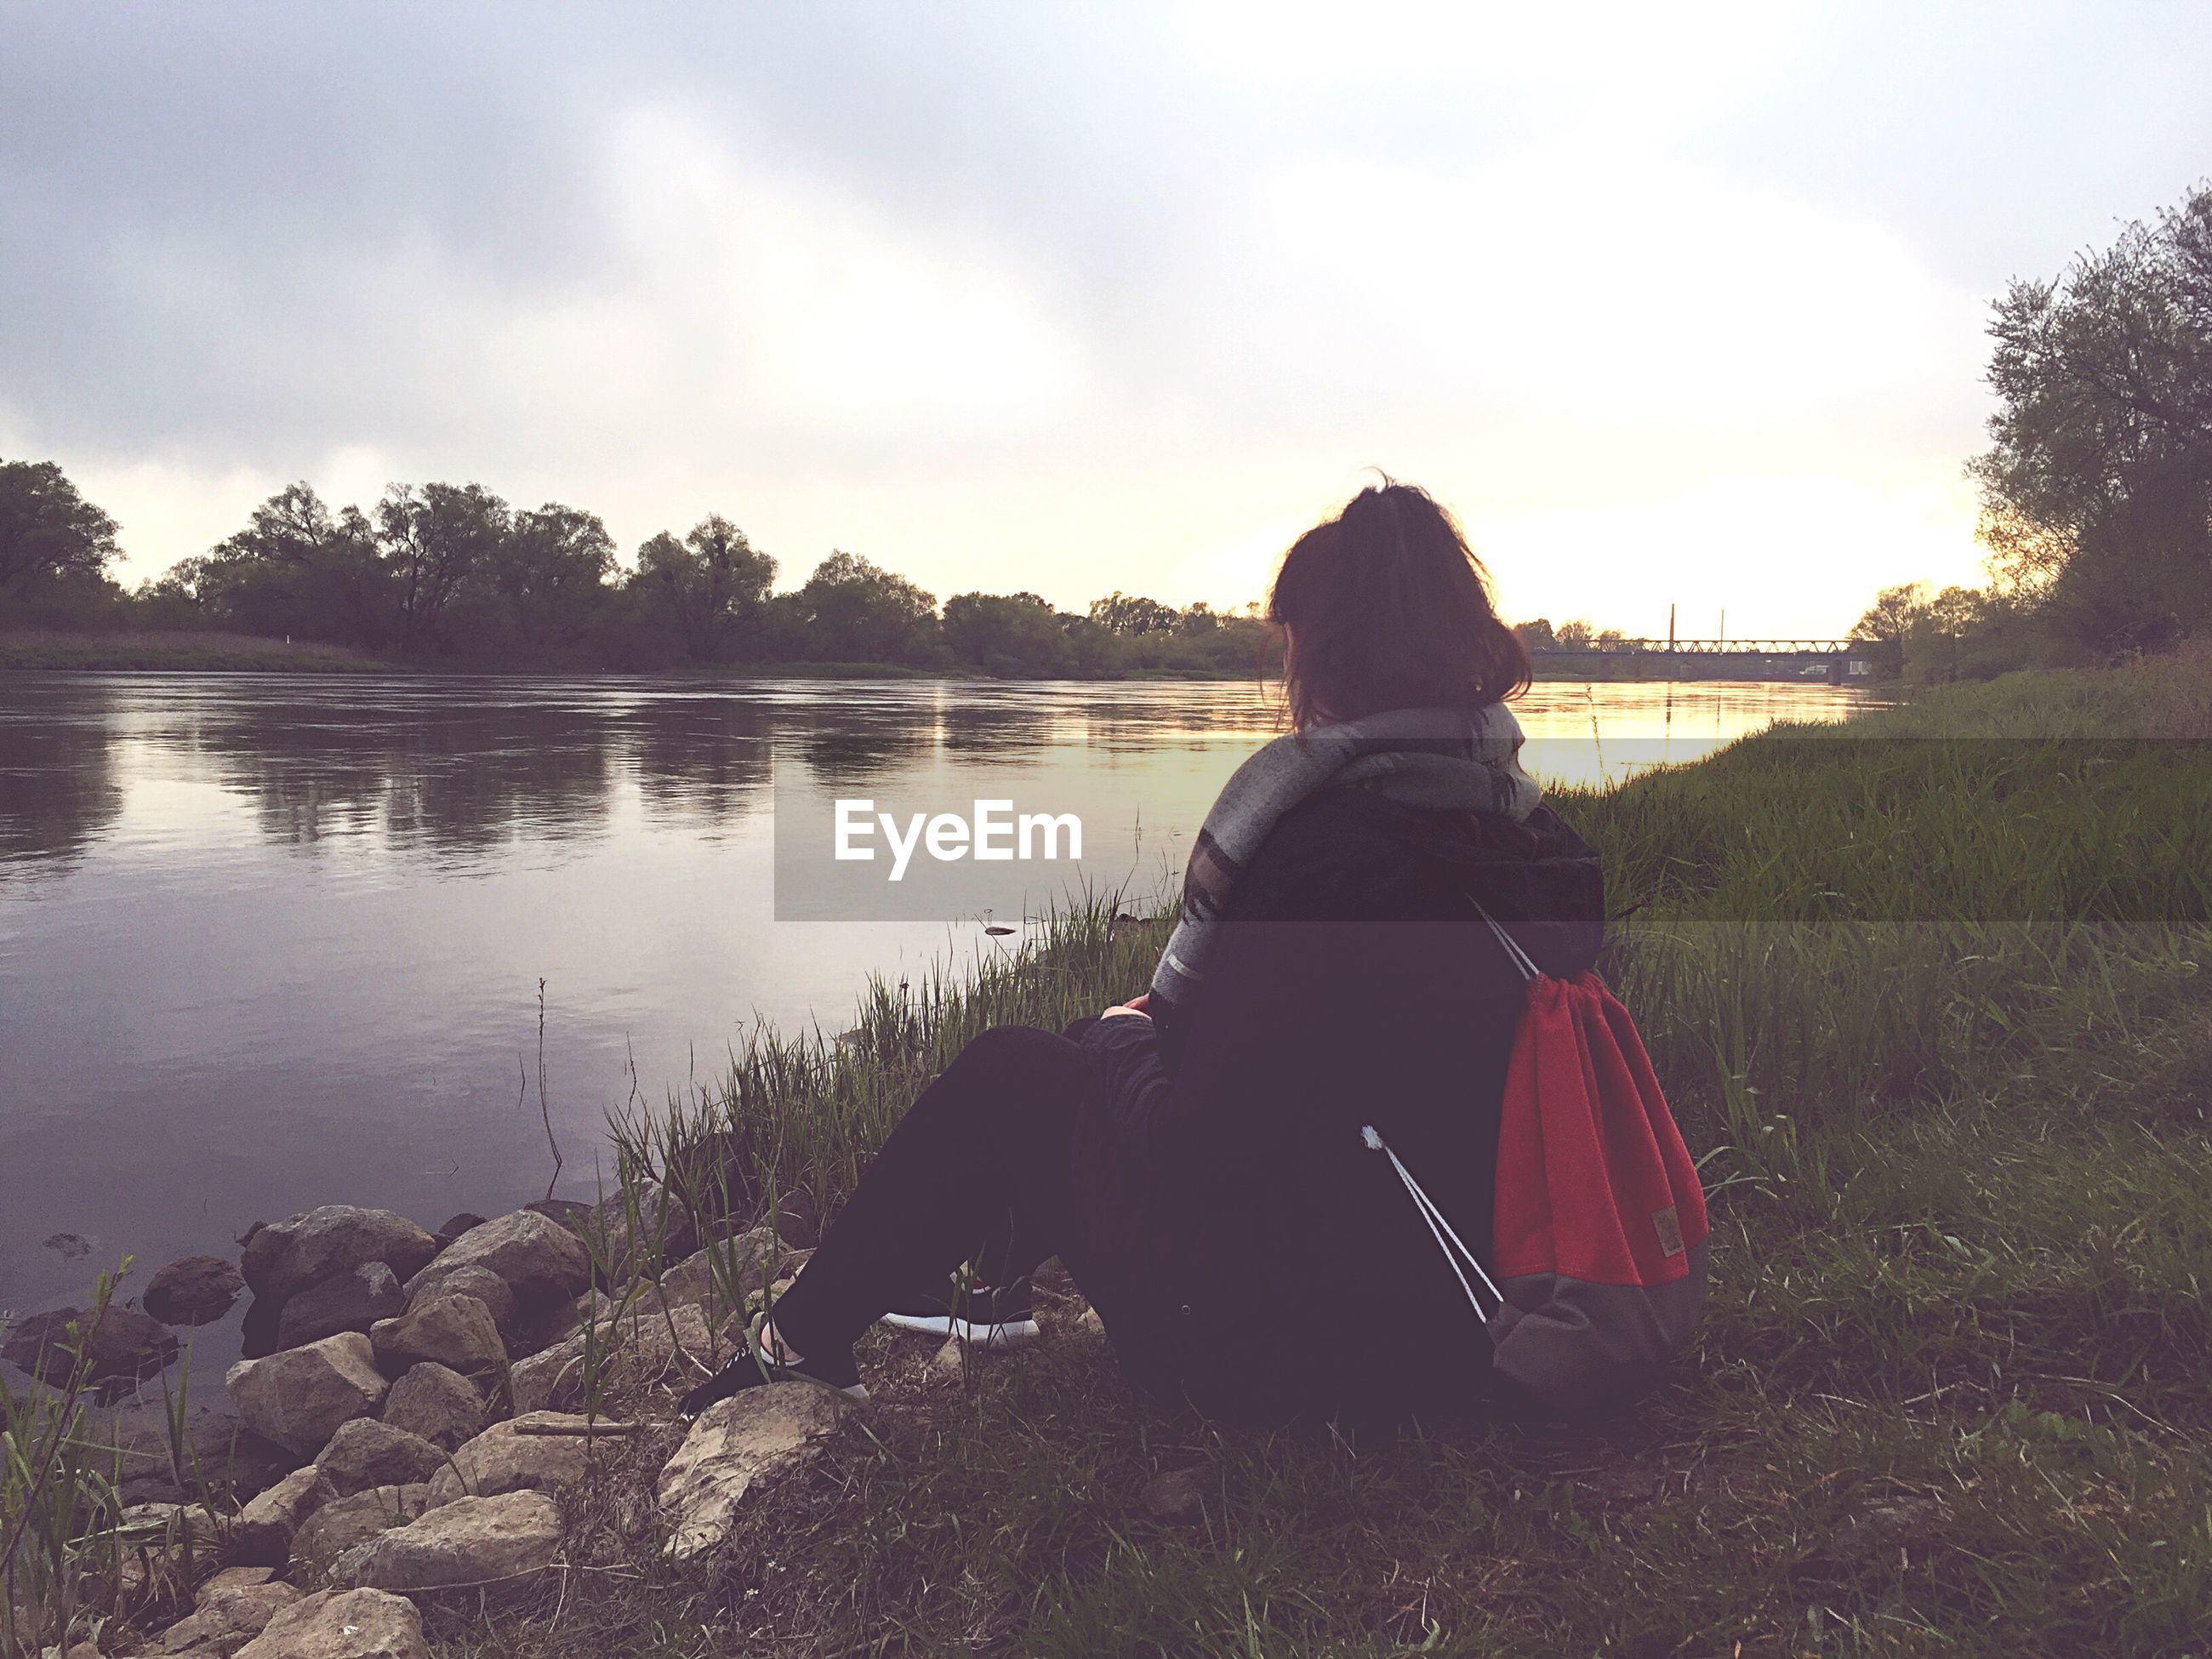 water, sky, rear view, lifestyles, leisure activity, lake, tranquility, sitting, tranquil scene, cloud - sky, men, nature, standing, beauty in nature, scenics, person, relaxation, cloud